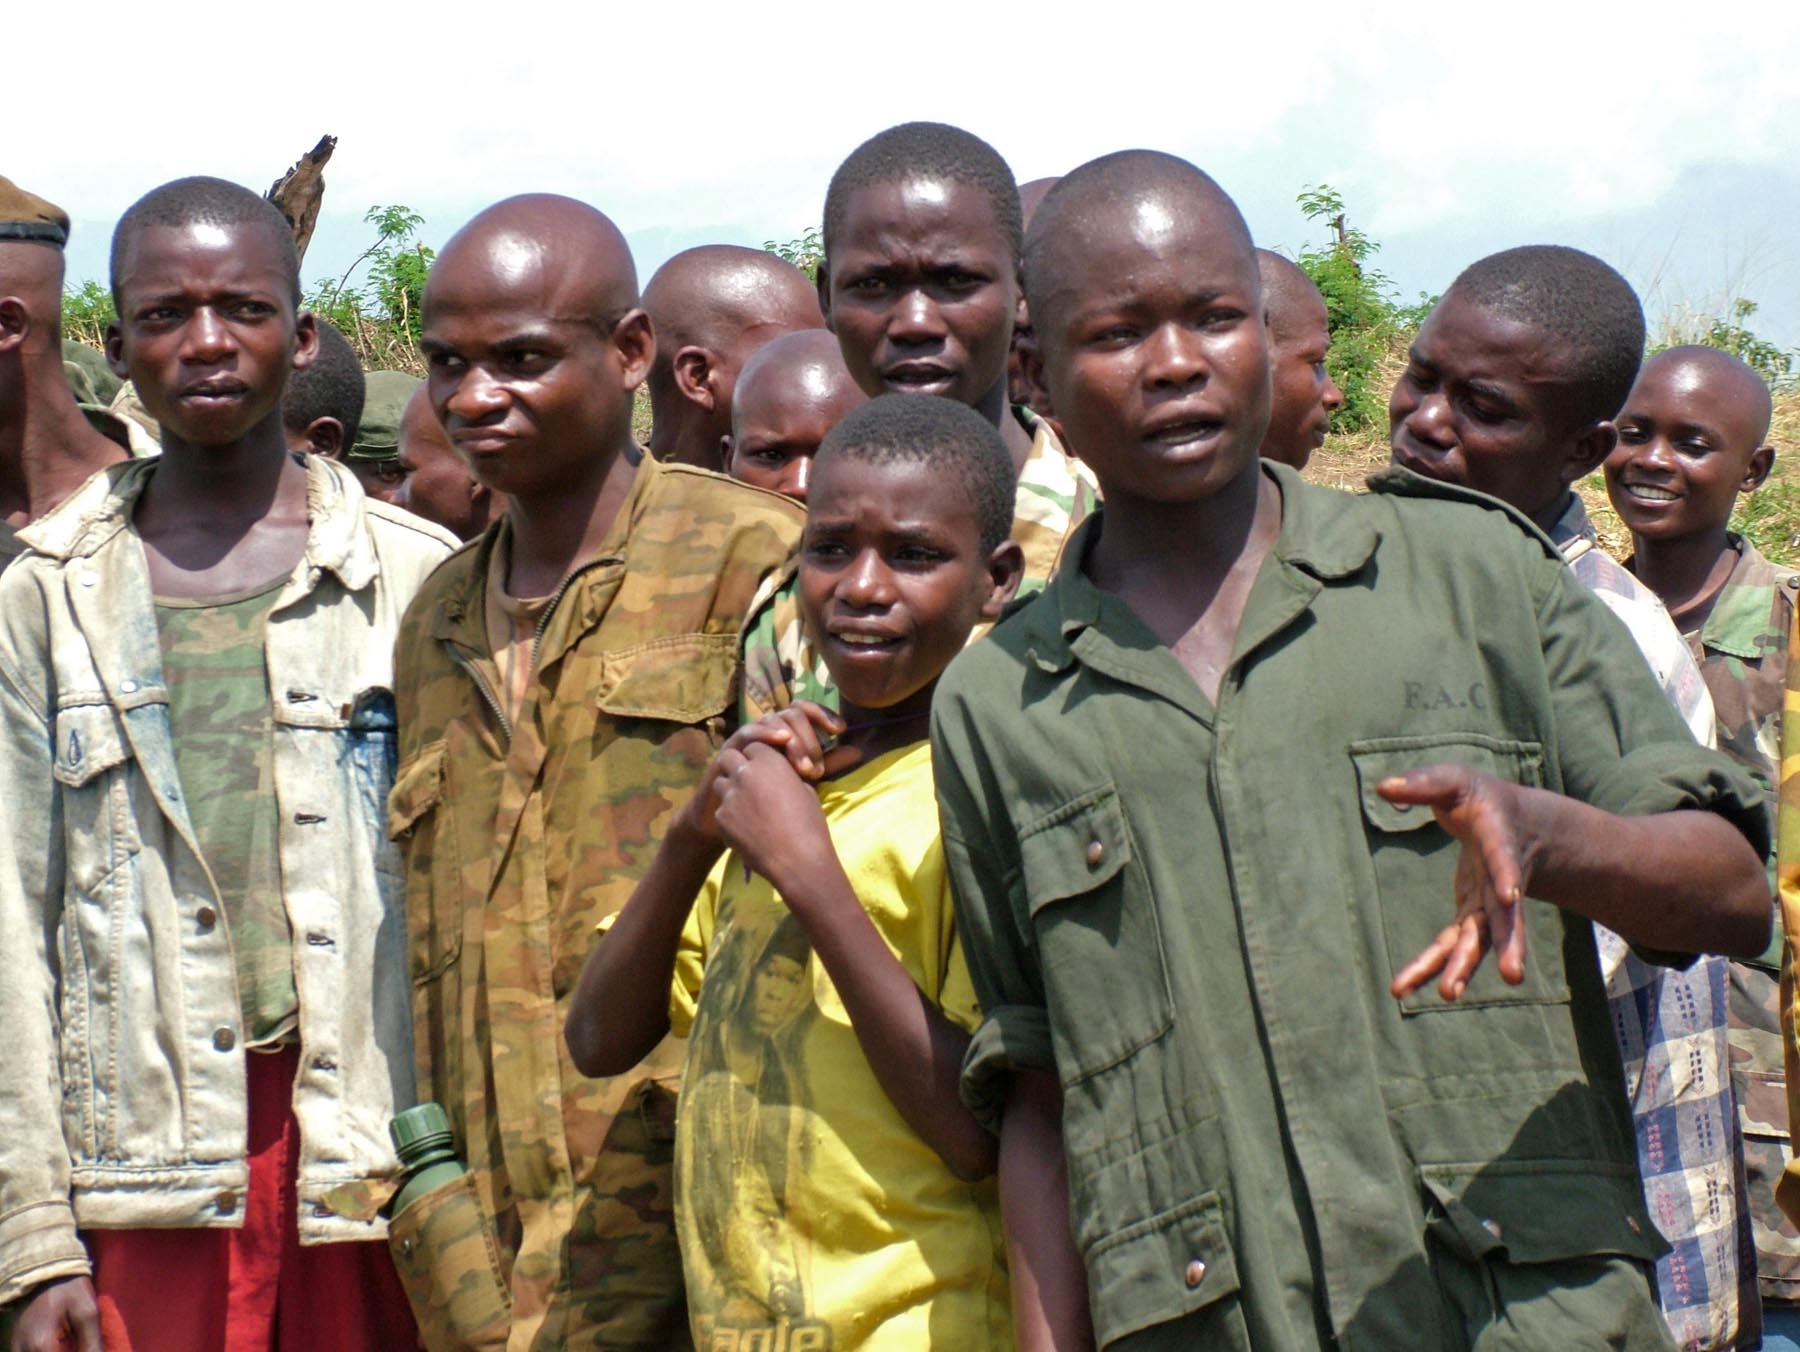 discussion of former child soldiers with Compared to other adults interviewed for our study, caregivers of former child soldiers were more likely to cite stigma as a significant obstacle facing returning children moreover, young people frequently mentioned stigma as a problem upon their return.